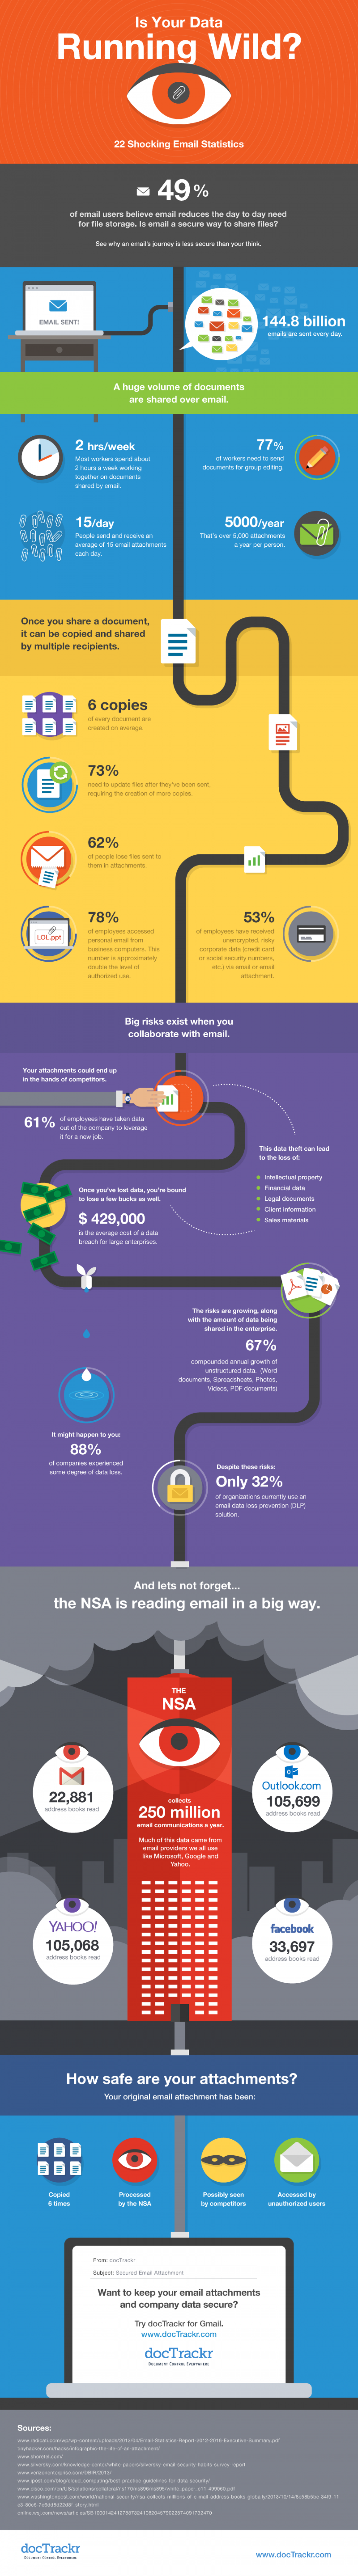 Is Your Data Running Wild? Infographic